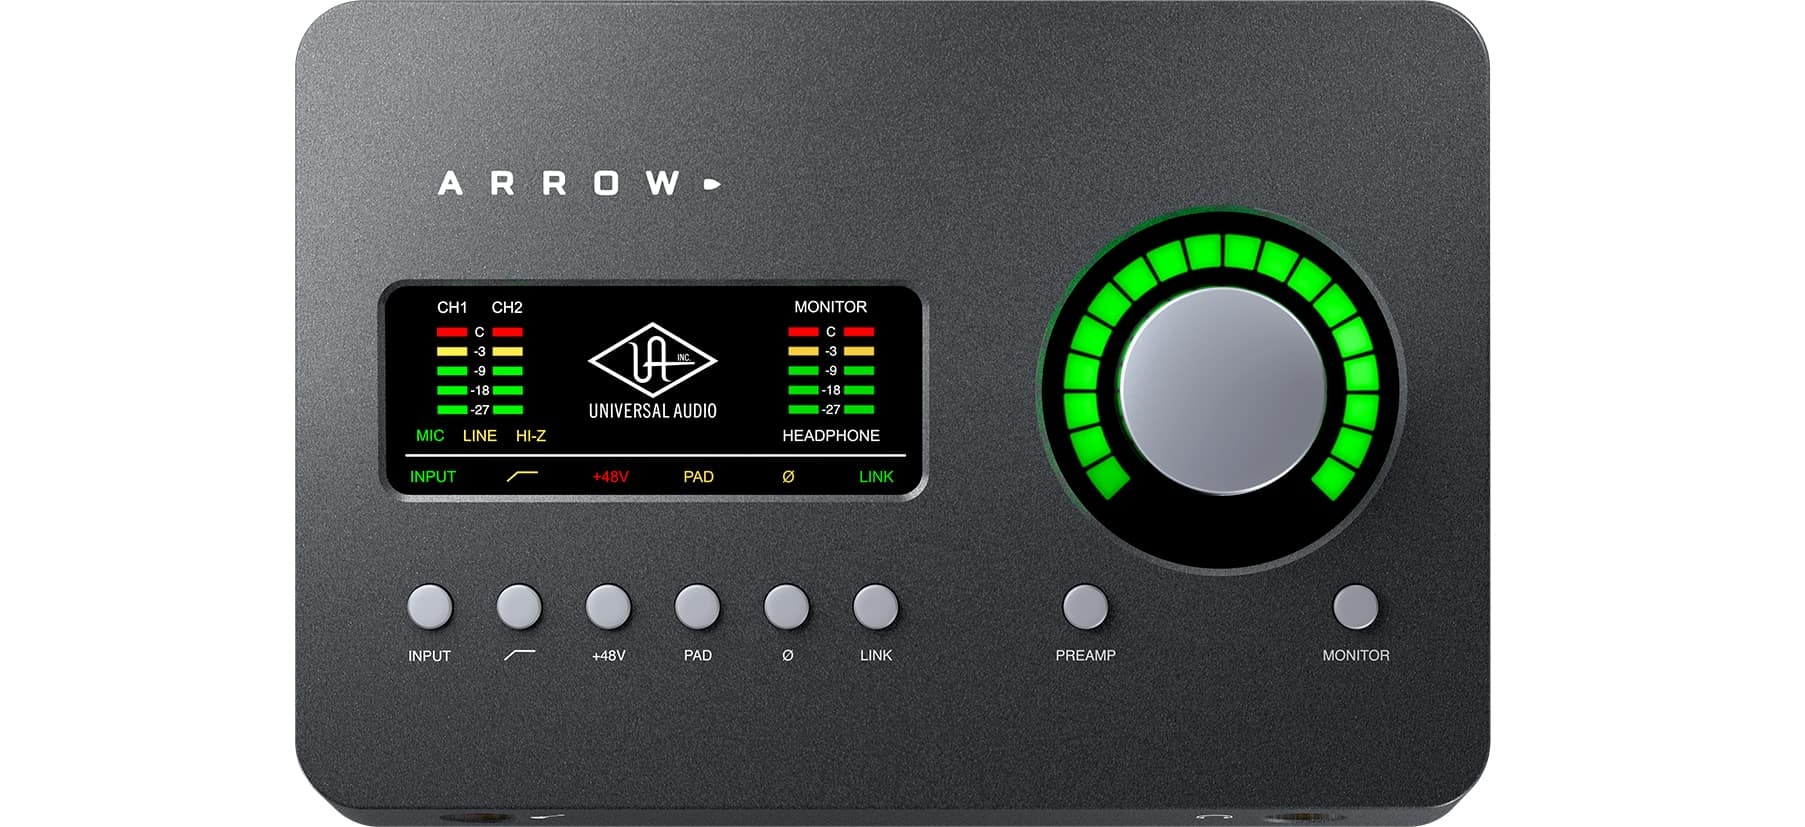 Universal Audio Arrow 2x4 Thunderbolt 3 Interface